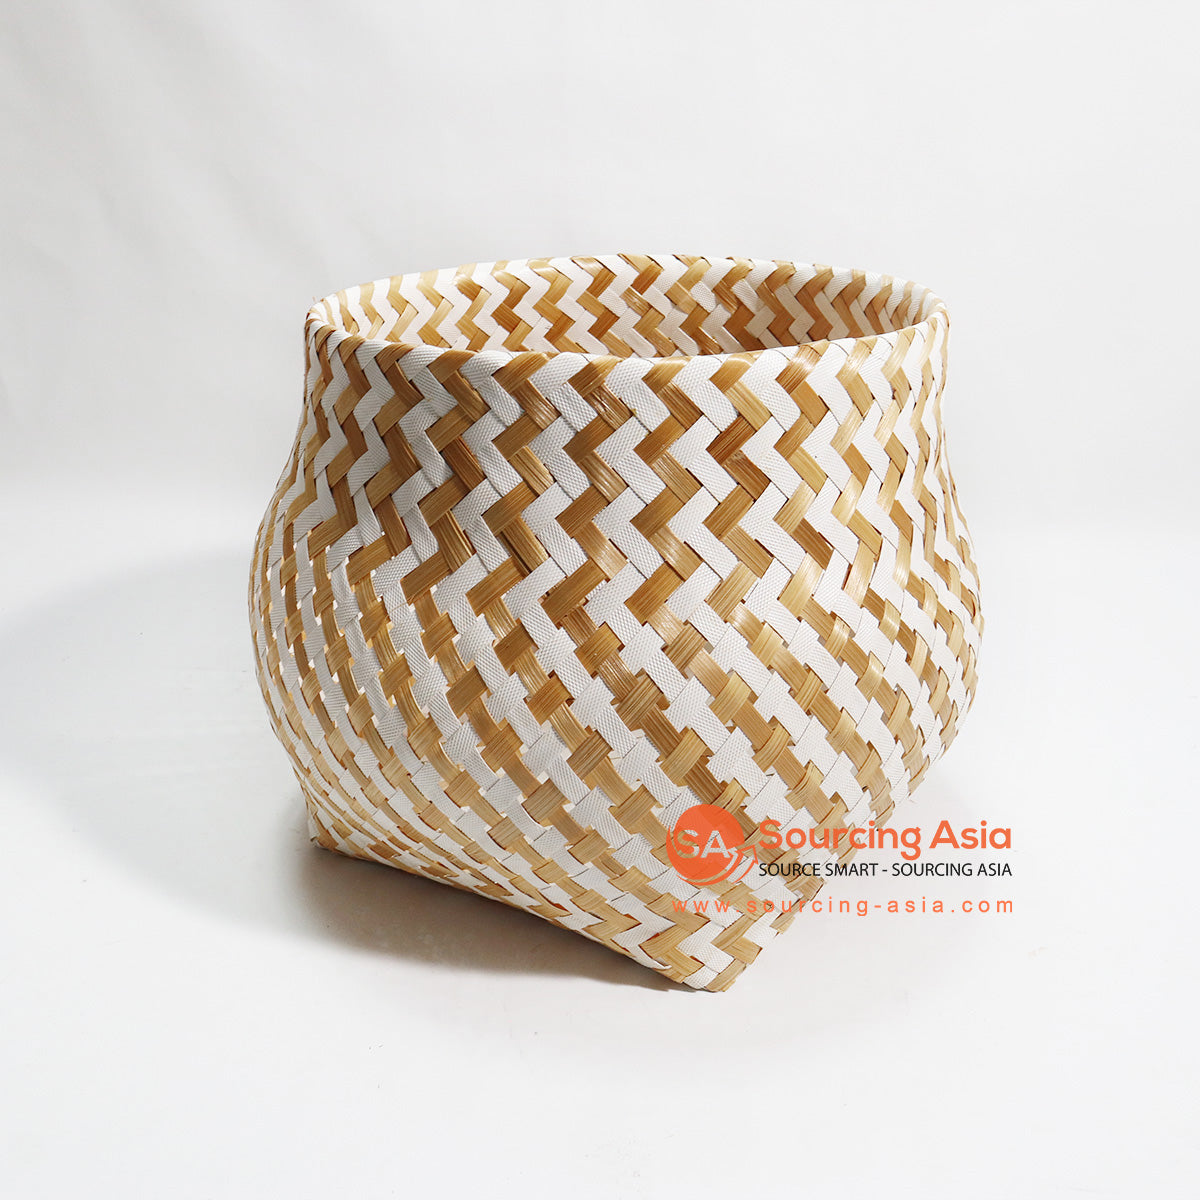 HBSC111 MIX BAMBOO AND SYNTHETIC WASTE PAPER BASKET